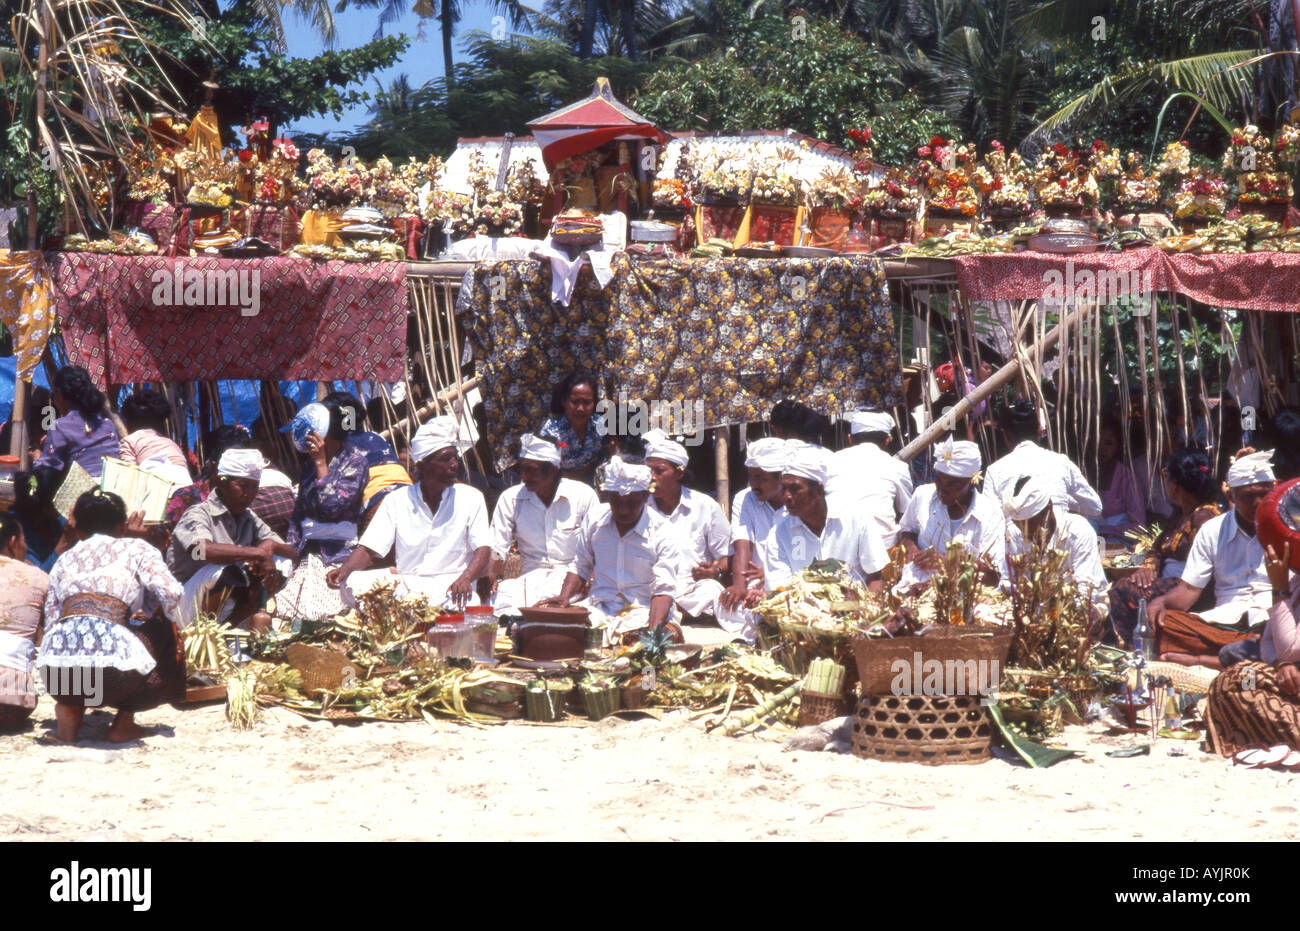 Indonesia Rituals Weddings And Funerals: Colourful Funeral Ceremony, Bali, Indonesia Stock Photo